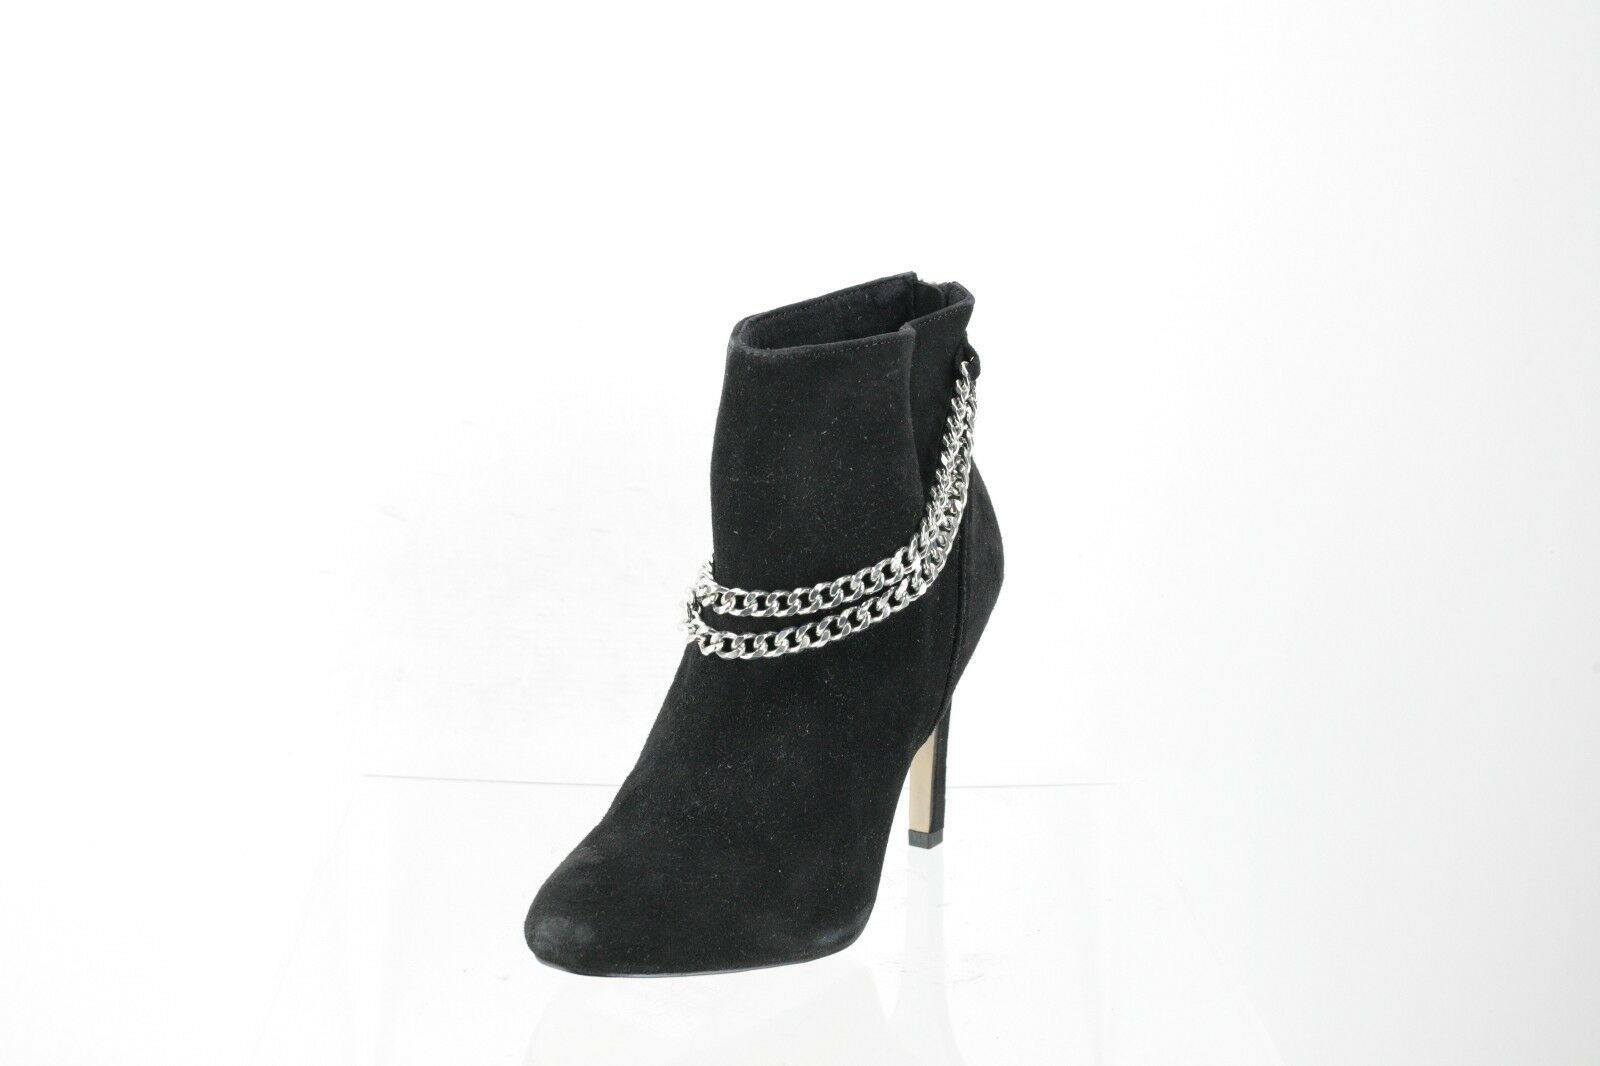 Women's Dolce Vita Soft Black Suede Silver Chains  Ankle Boots Heels Size 8.5 M